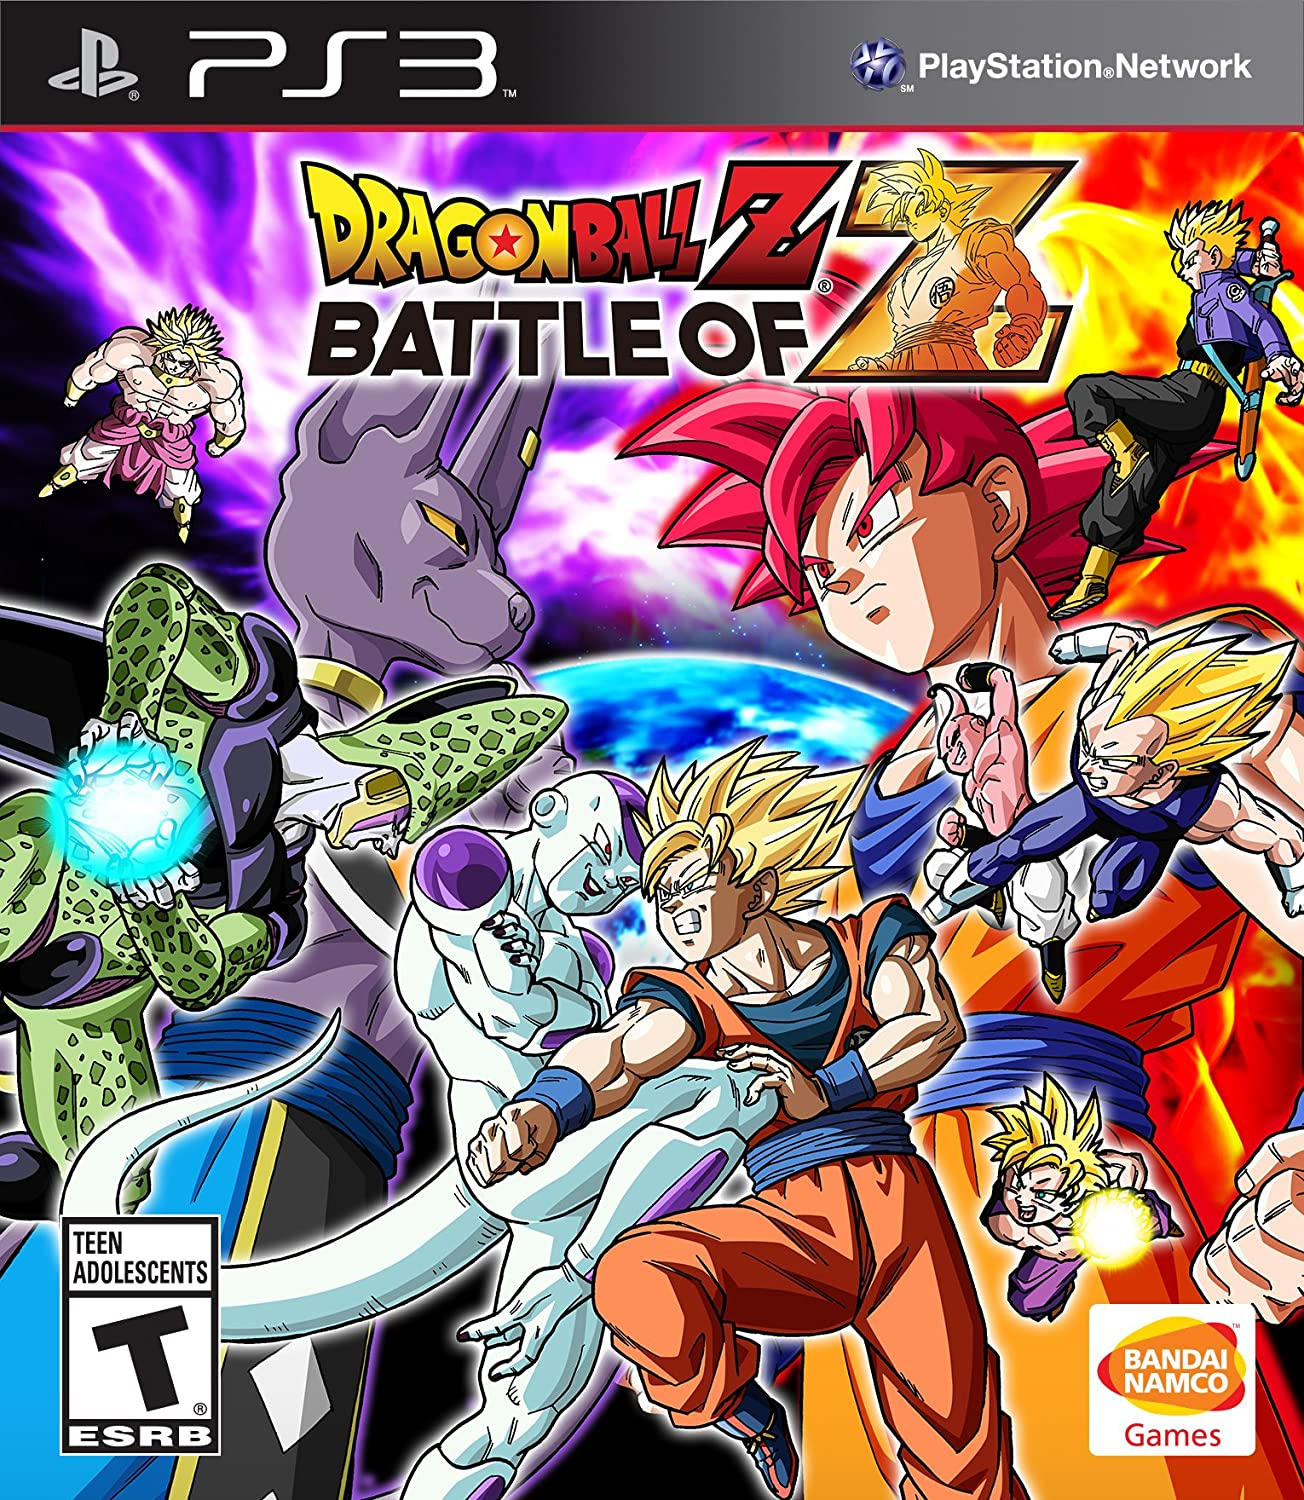 Buy dragon ball z battle of z ps3 online at low prices in india buy dragon ball z battle of z ps3 online at low prices in india namco video games amazon voltagebd Image collections